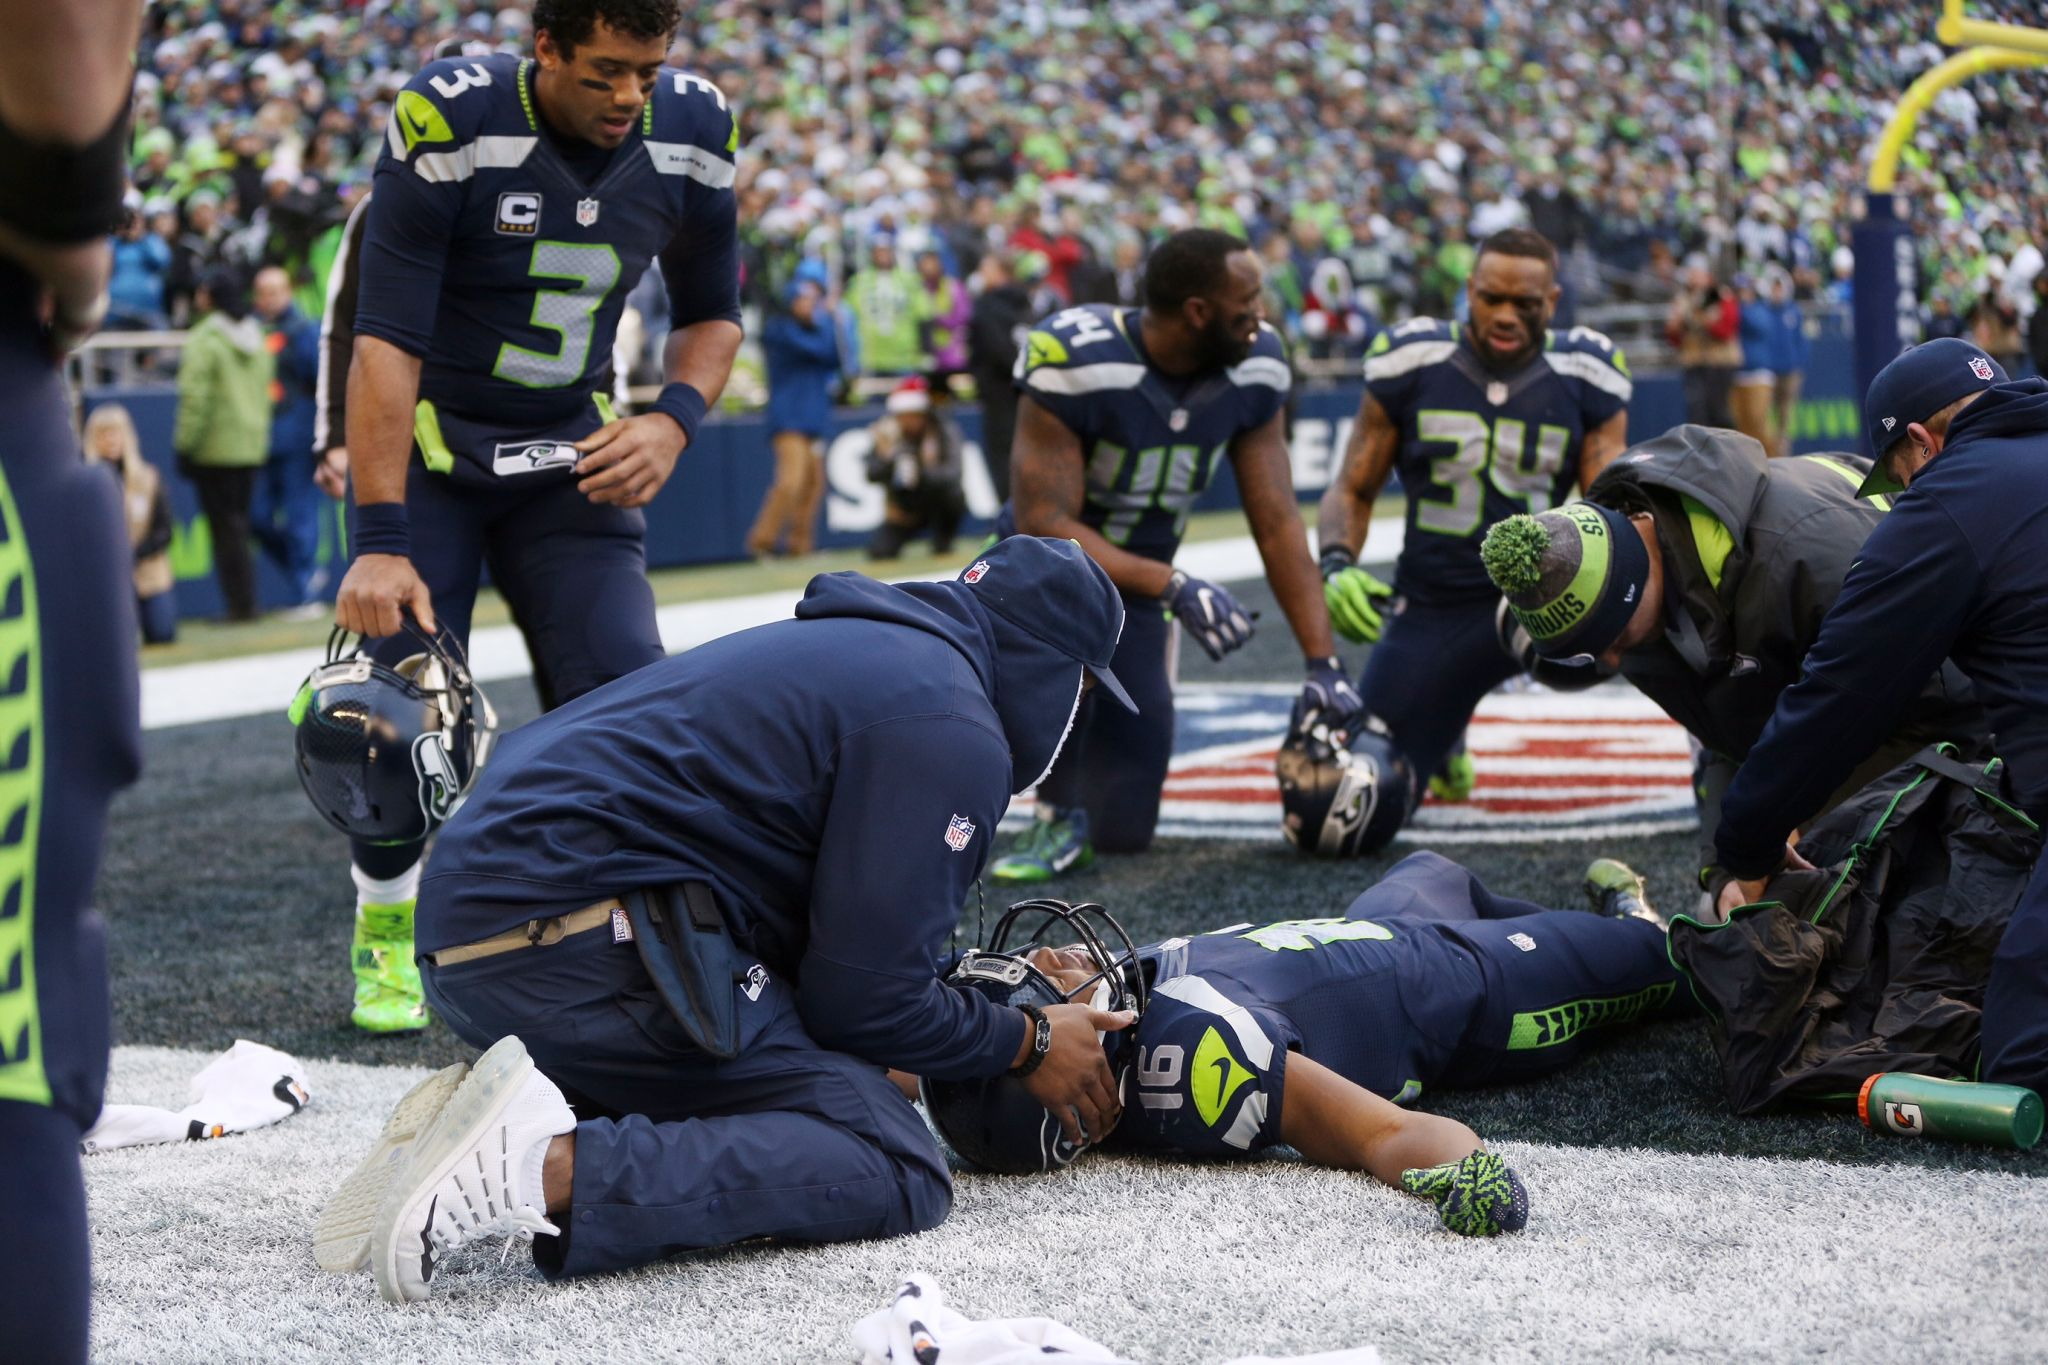 ae8c9a842 ... Limited Rush Fashion Jersey Seahawks Tyler Lockett out for season with  gruesome leg injury - seattlepi.com .